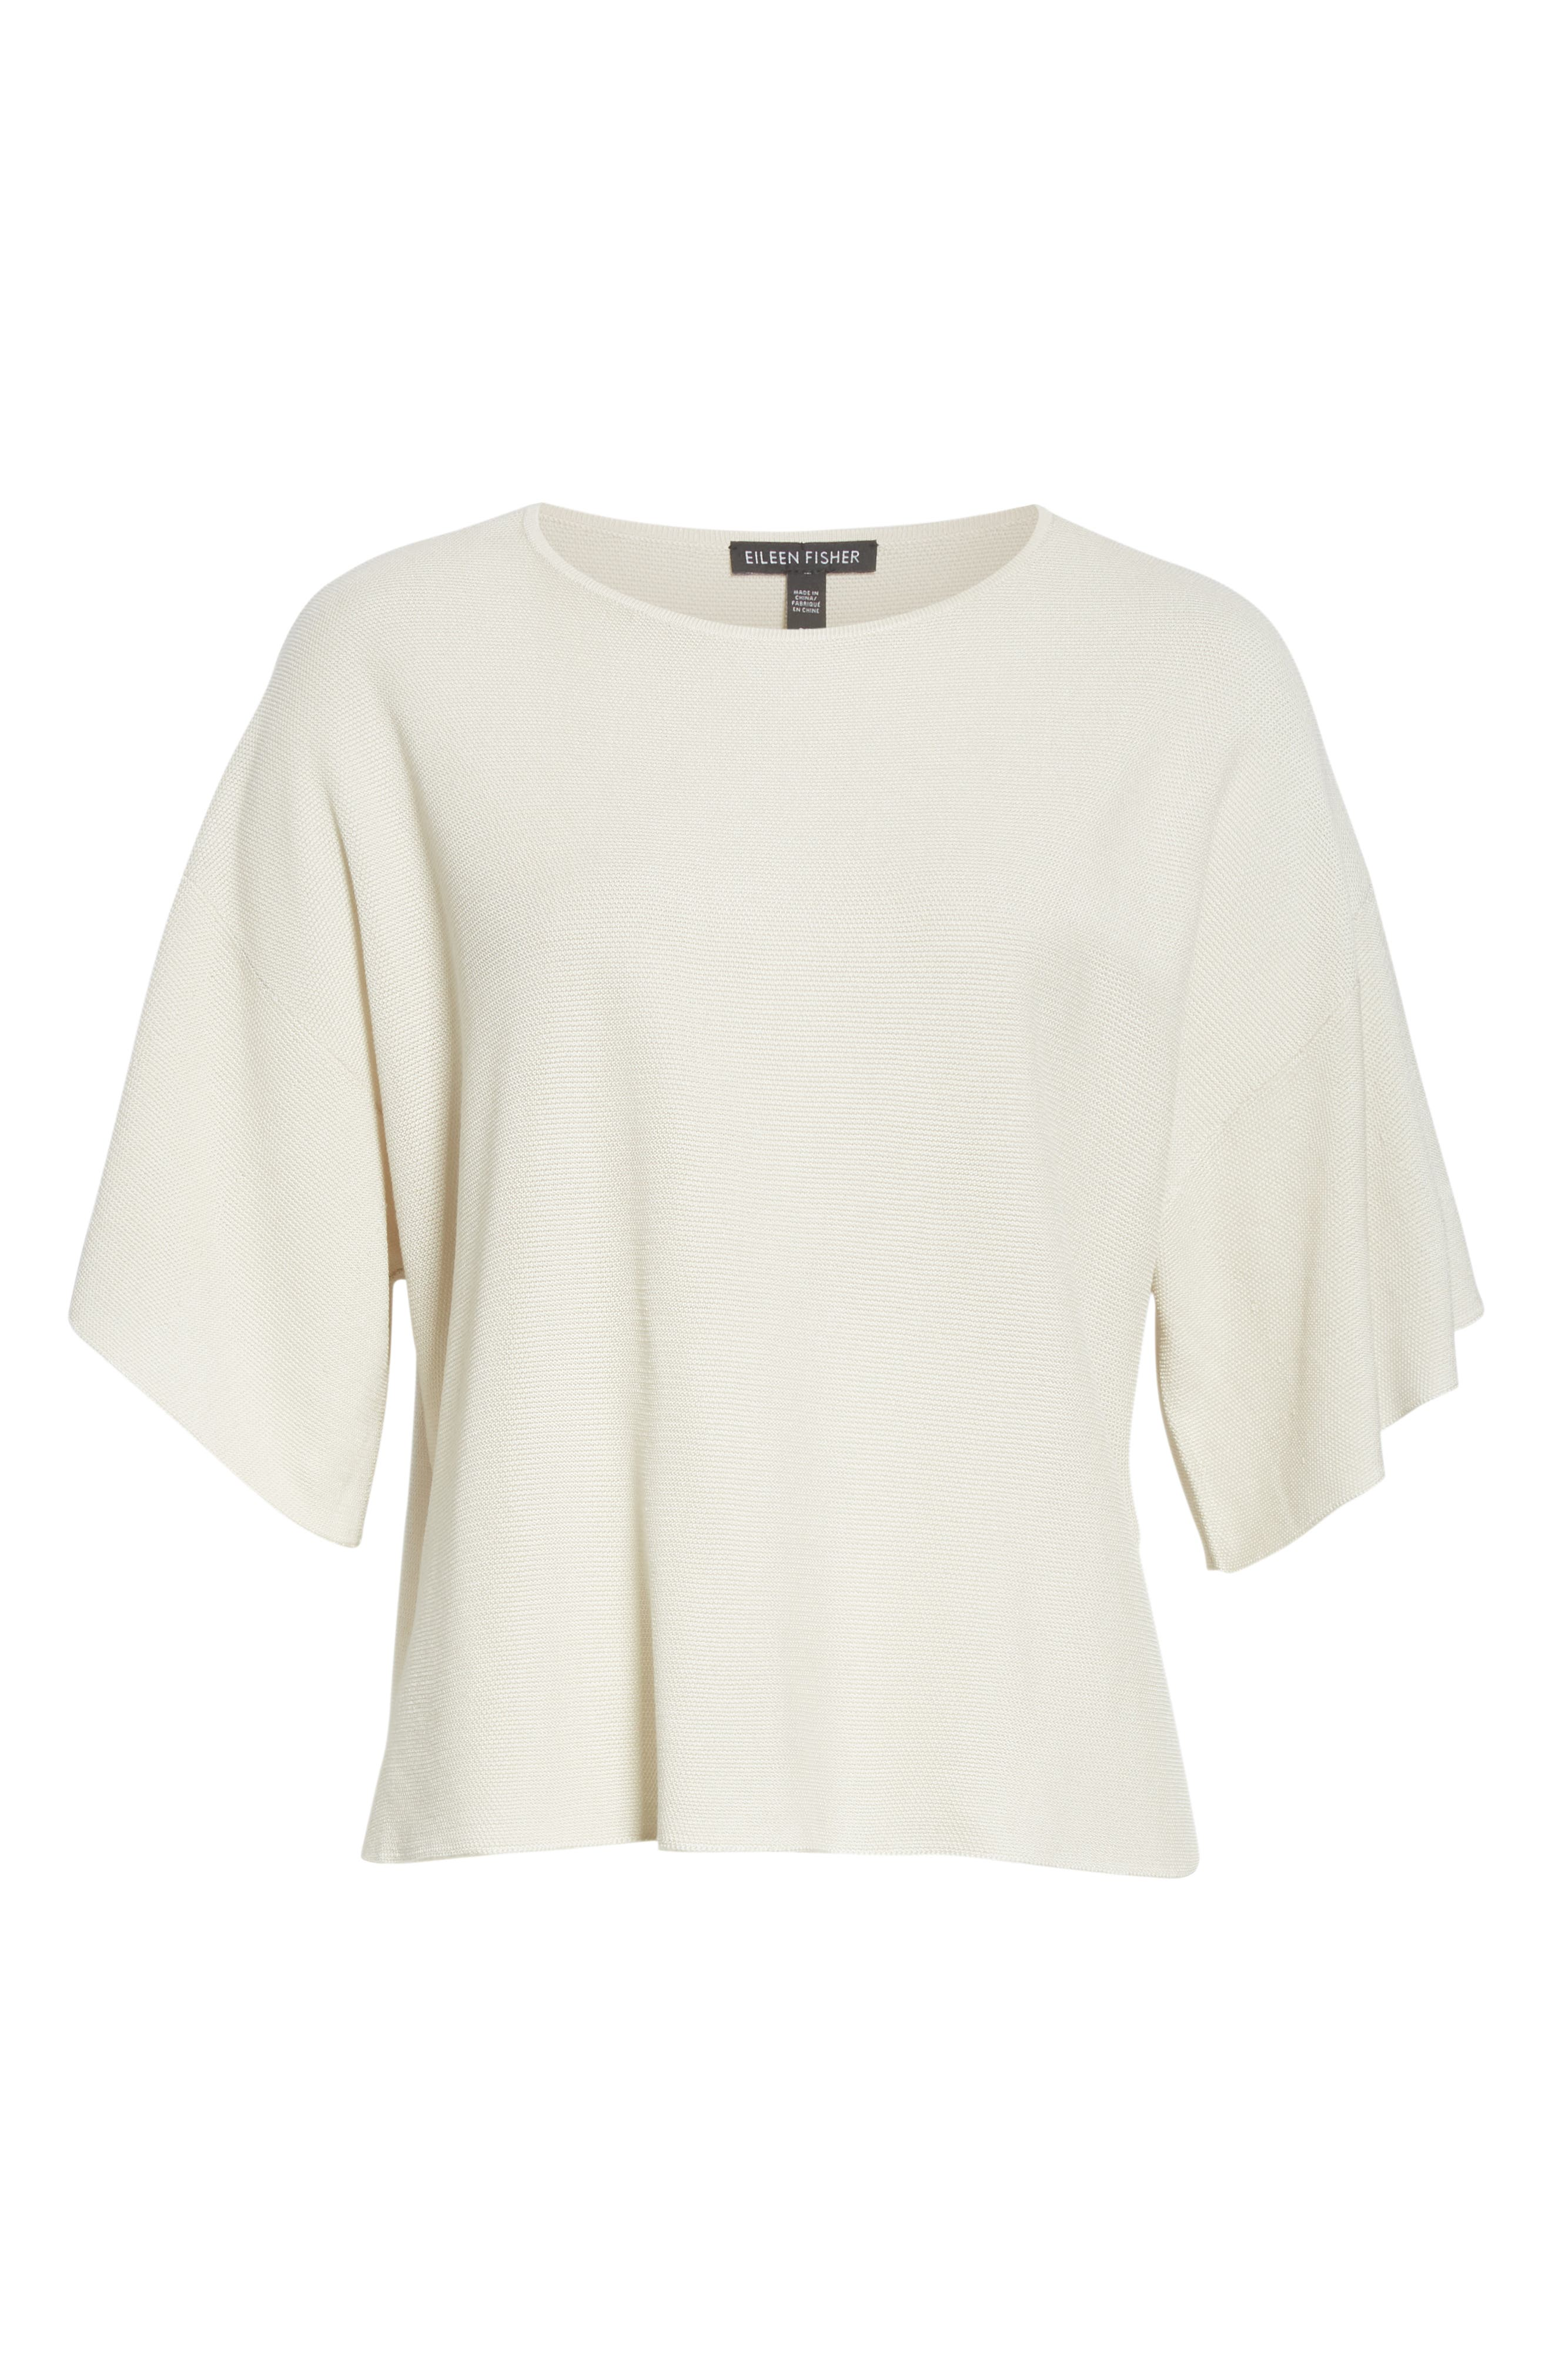 EILEEN FISHER, Elbow Sleeve Top, Alternate thumbnail 6, color, 100